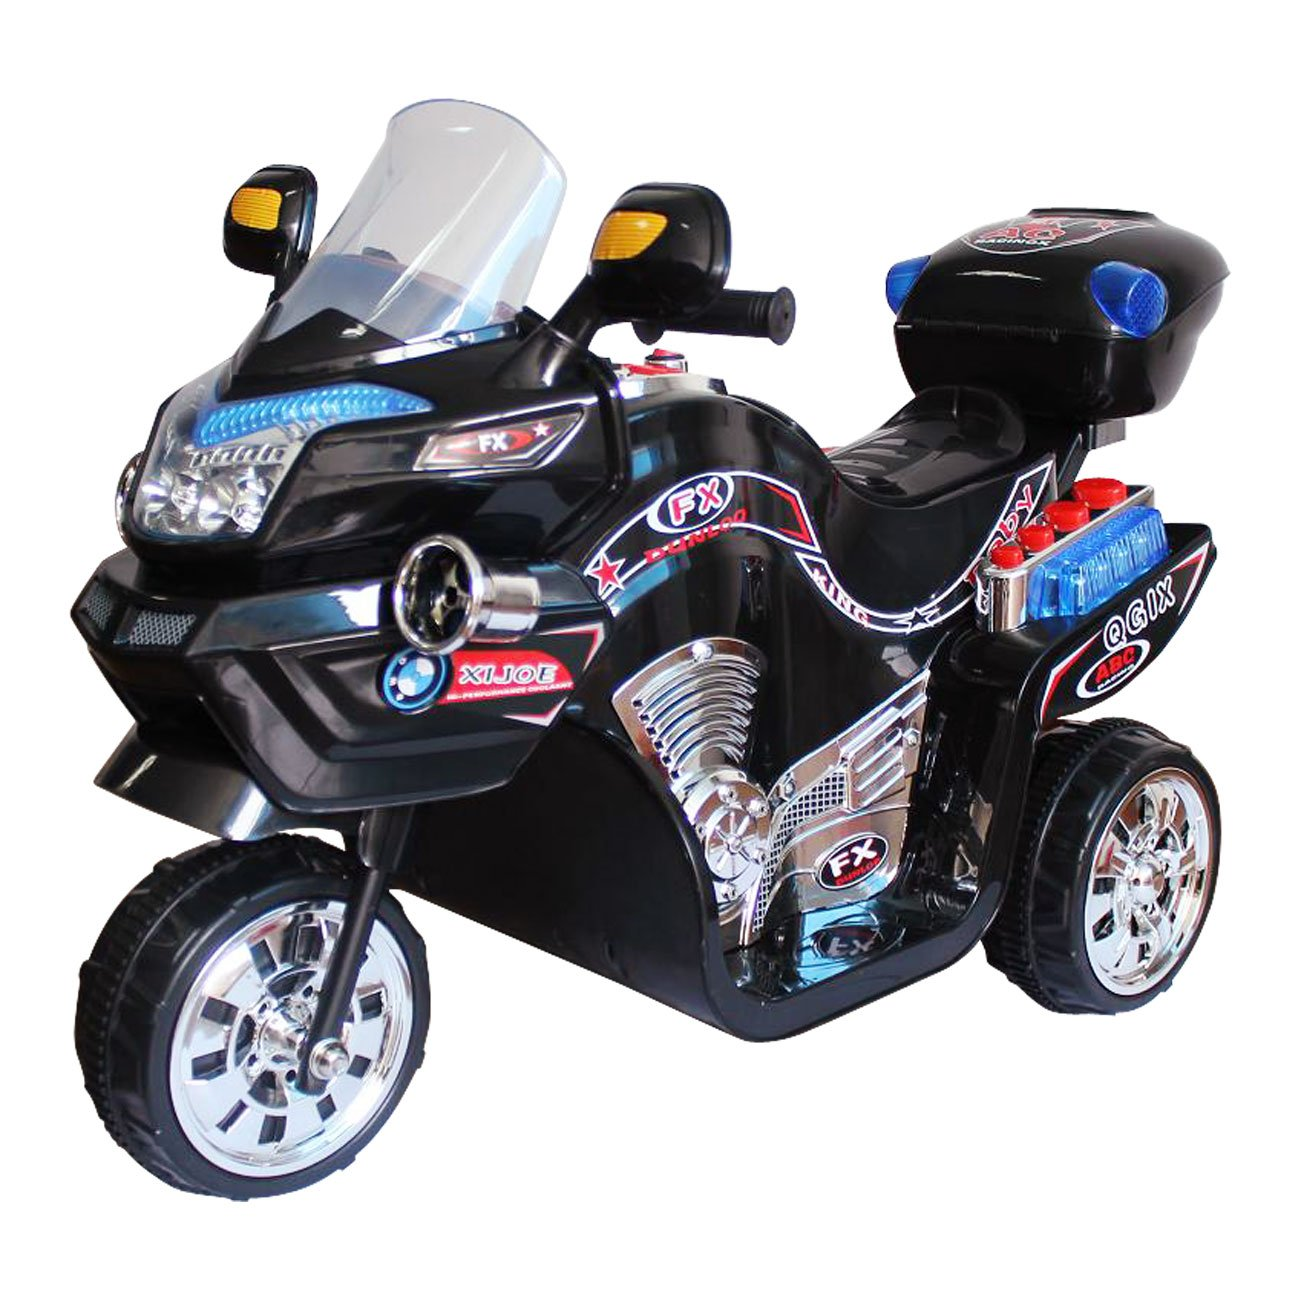 Amazon.com: Ride on Toy, 3 Wheel Motorcycle for Kids, Battery ...